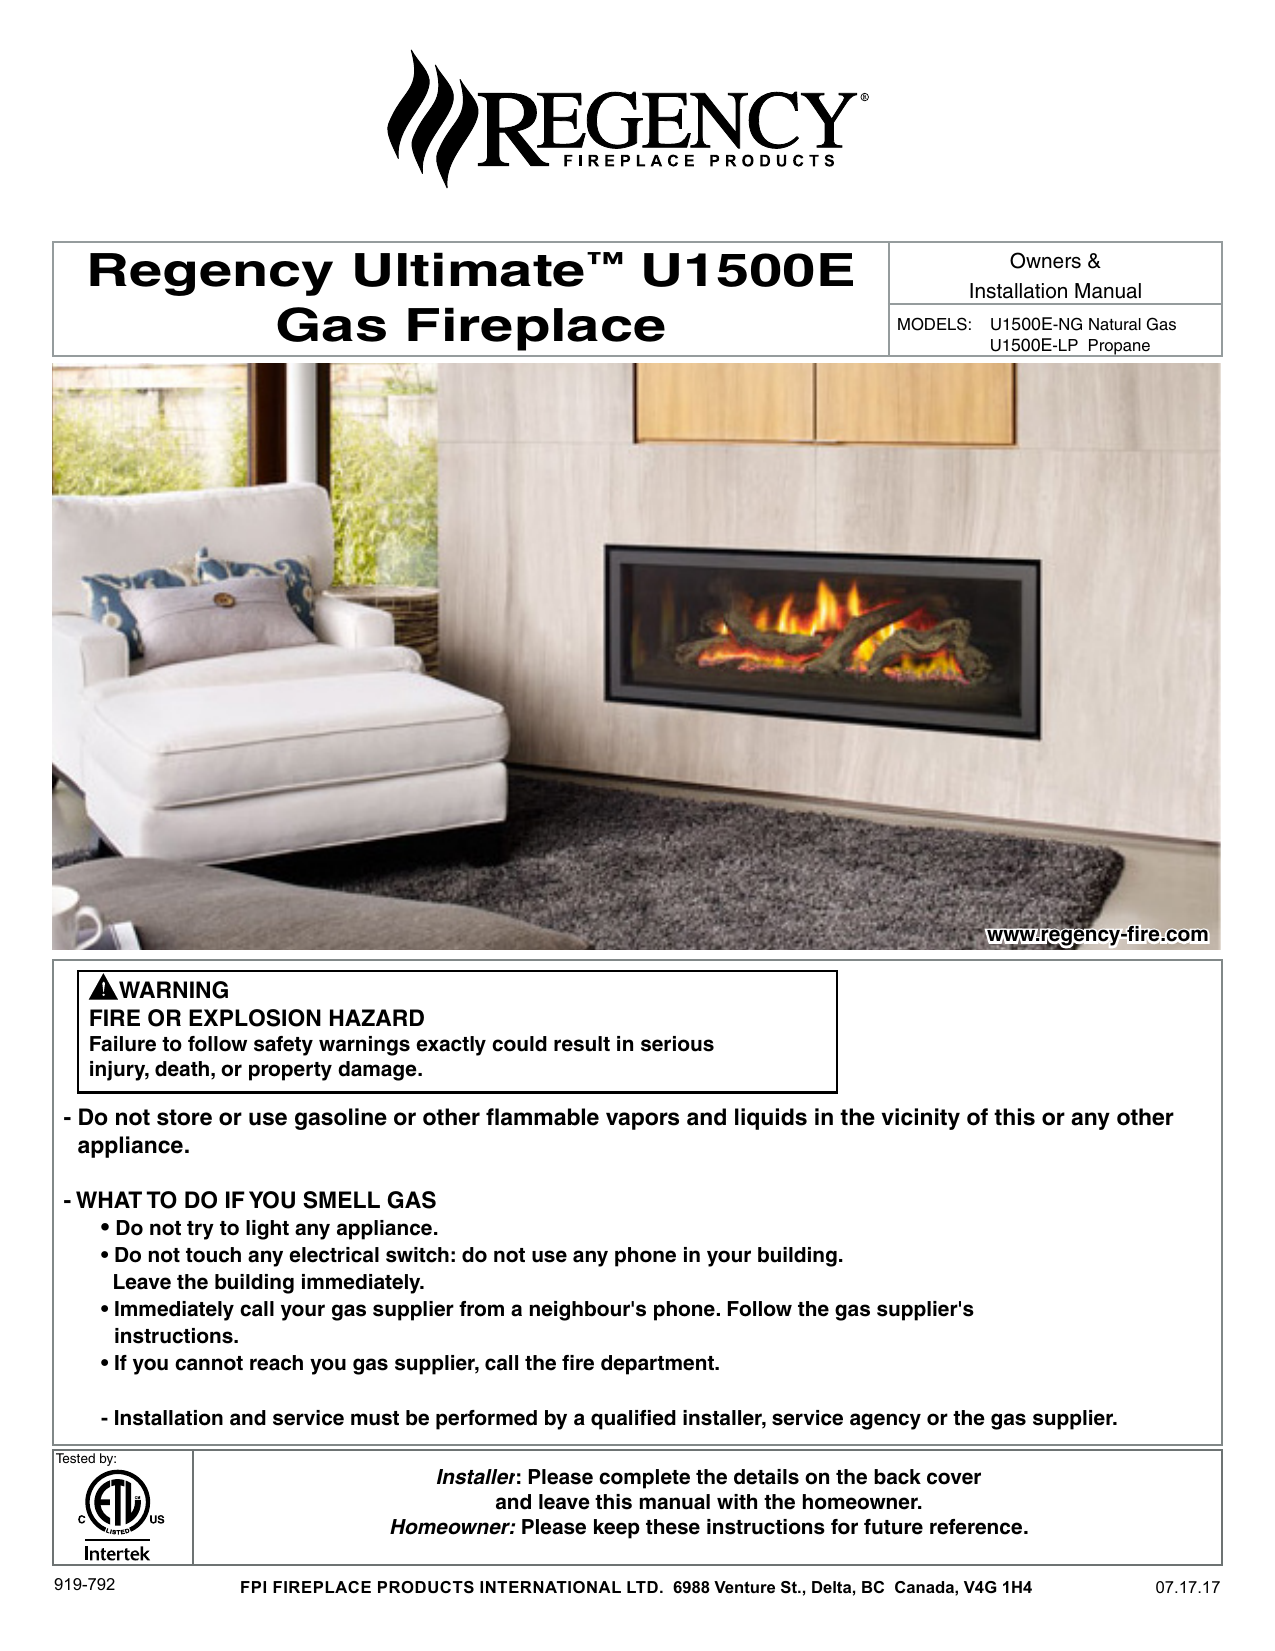 Gas Fireplace with Electric Switch Awesome Regency Ultimate™ U1500e Gas Fireplace